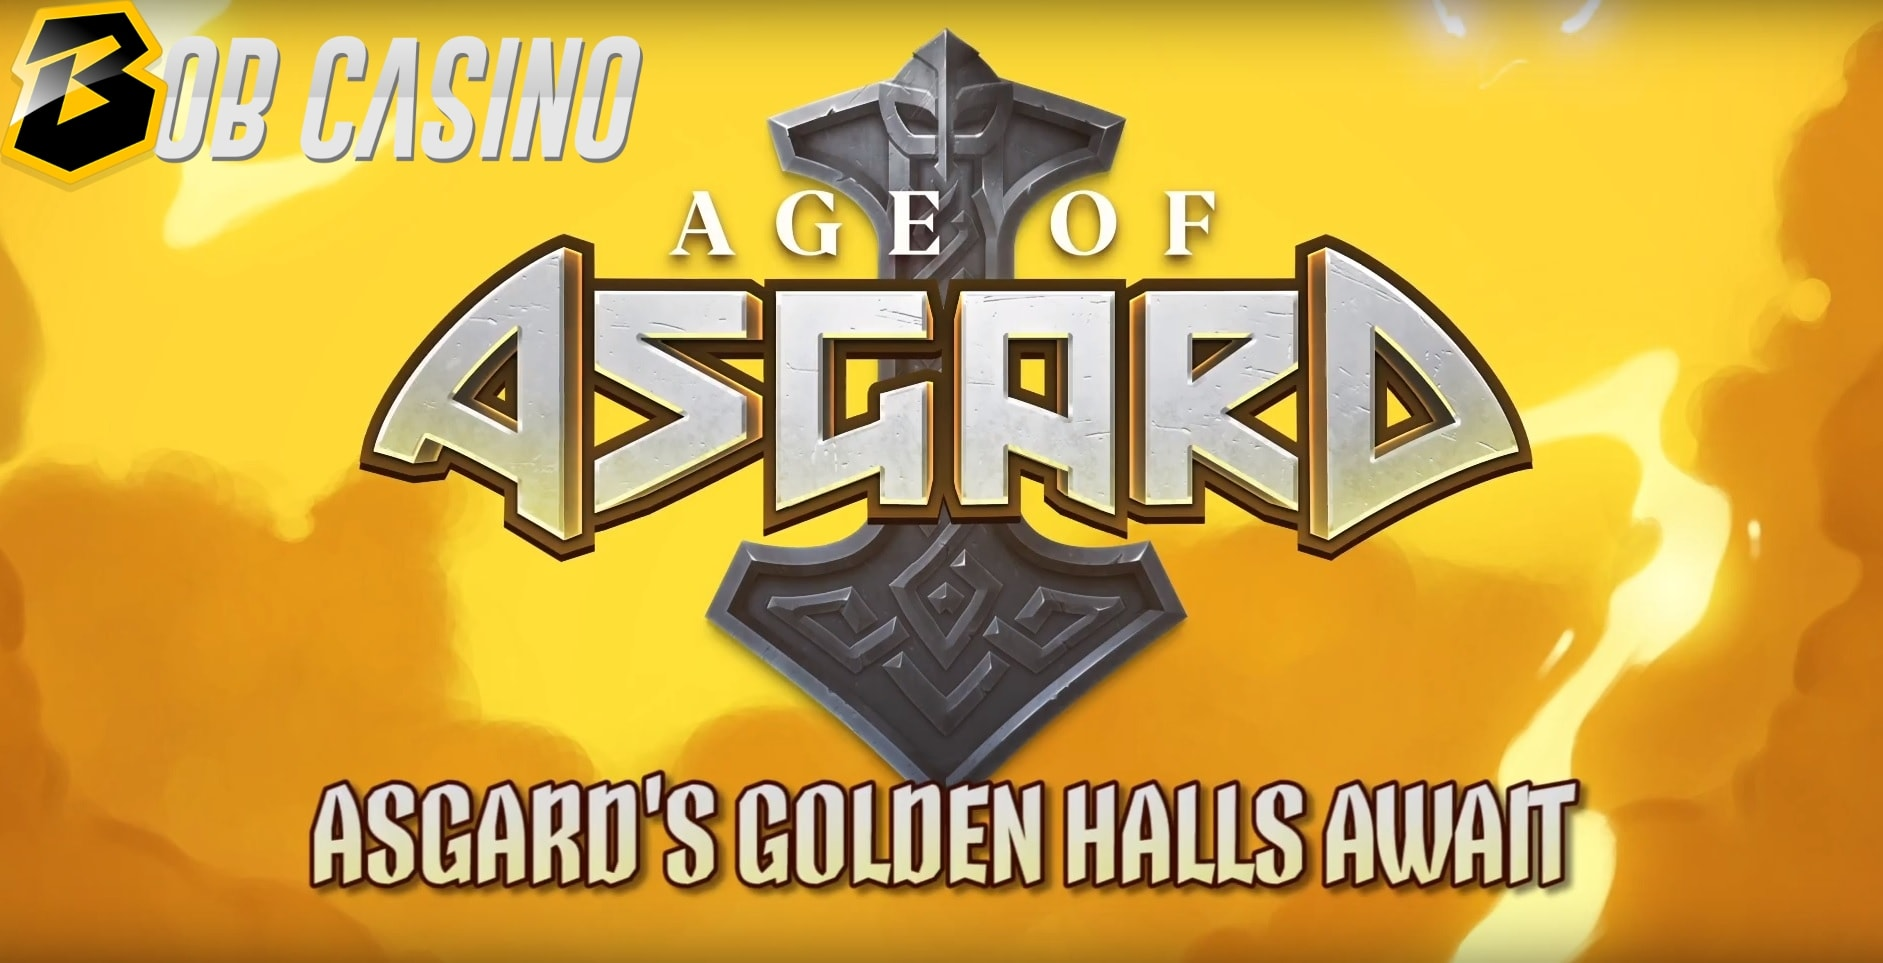 Age of Asgard slot logo from Yggdrasil surrounded by the Norse lightning.